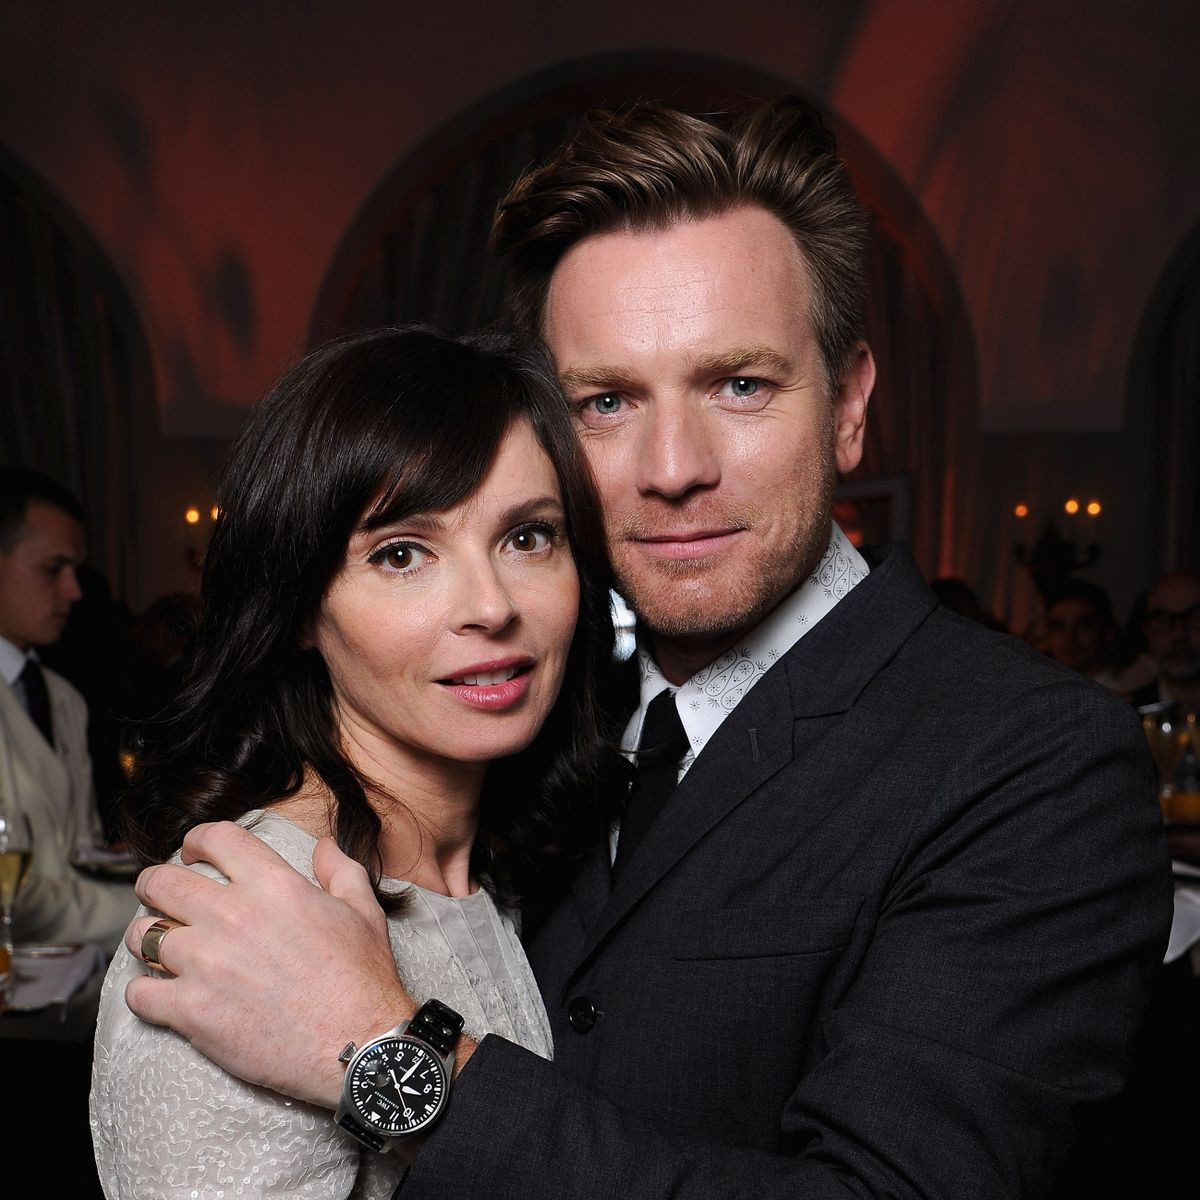 ?Star Wars? actor Ewan McGregor to give ex-wife half of his fortune